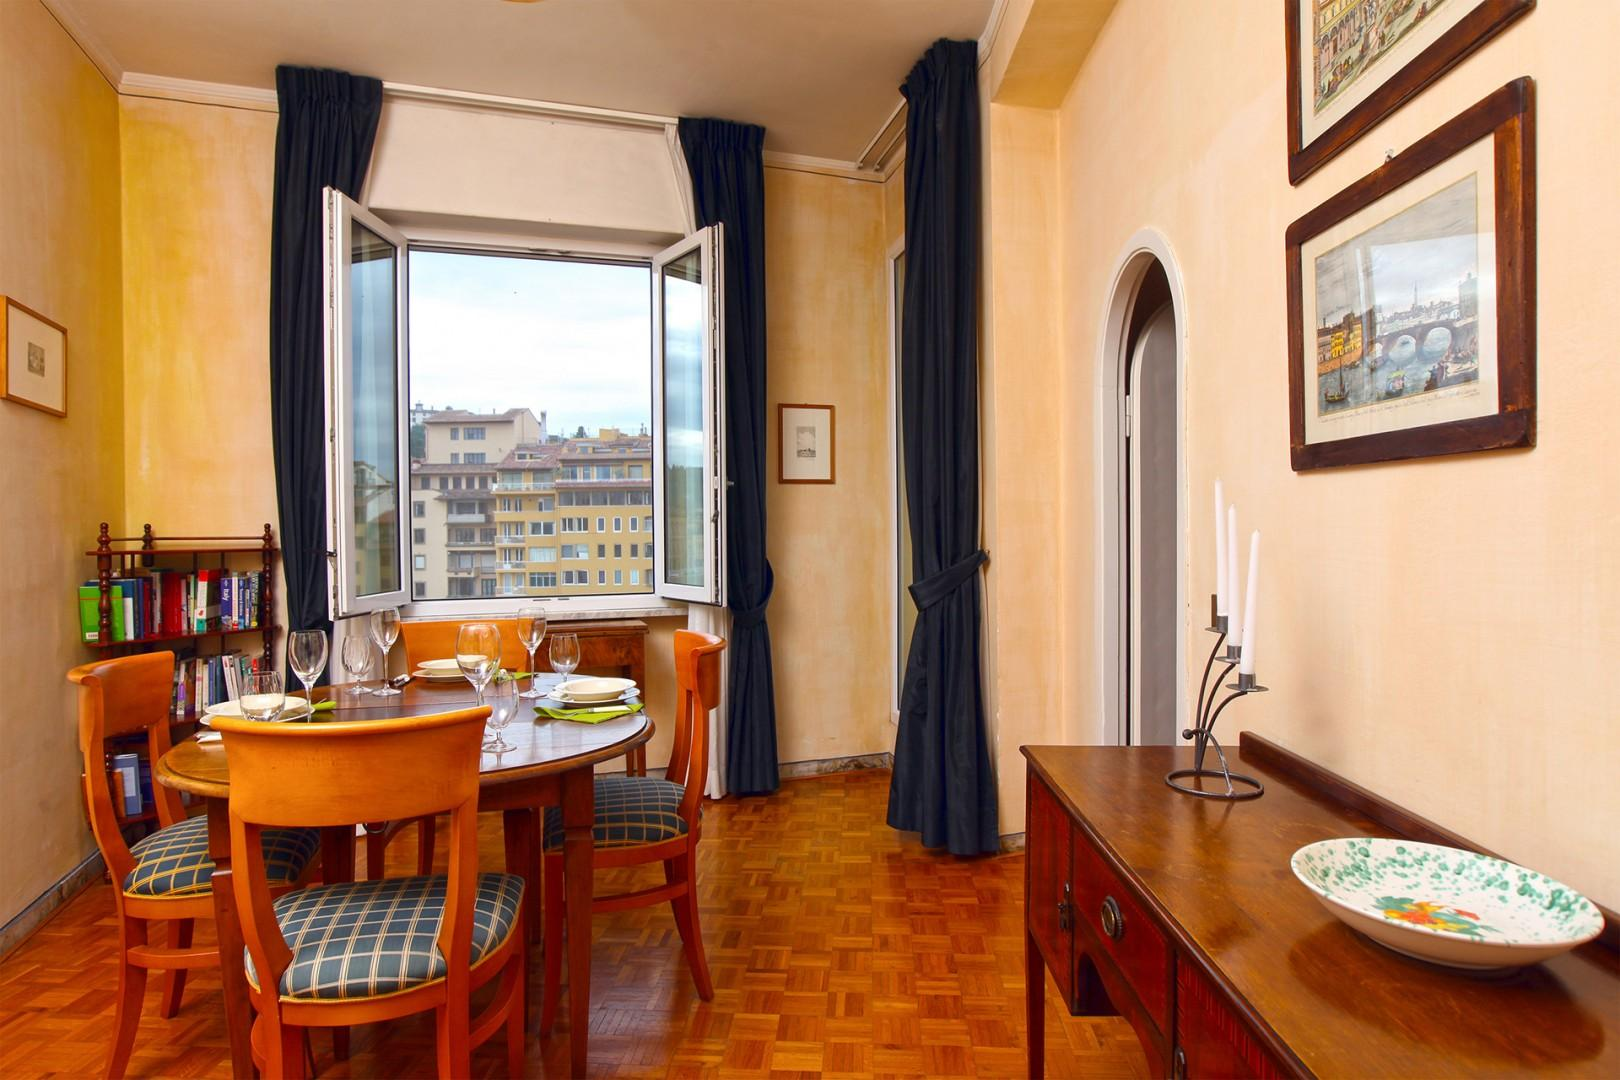 Dining room also has views out to the Arno river and terrace.